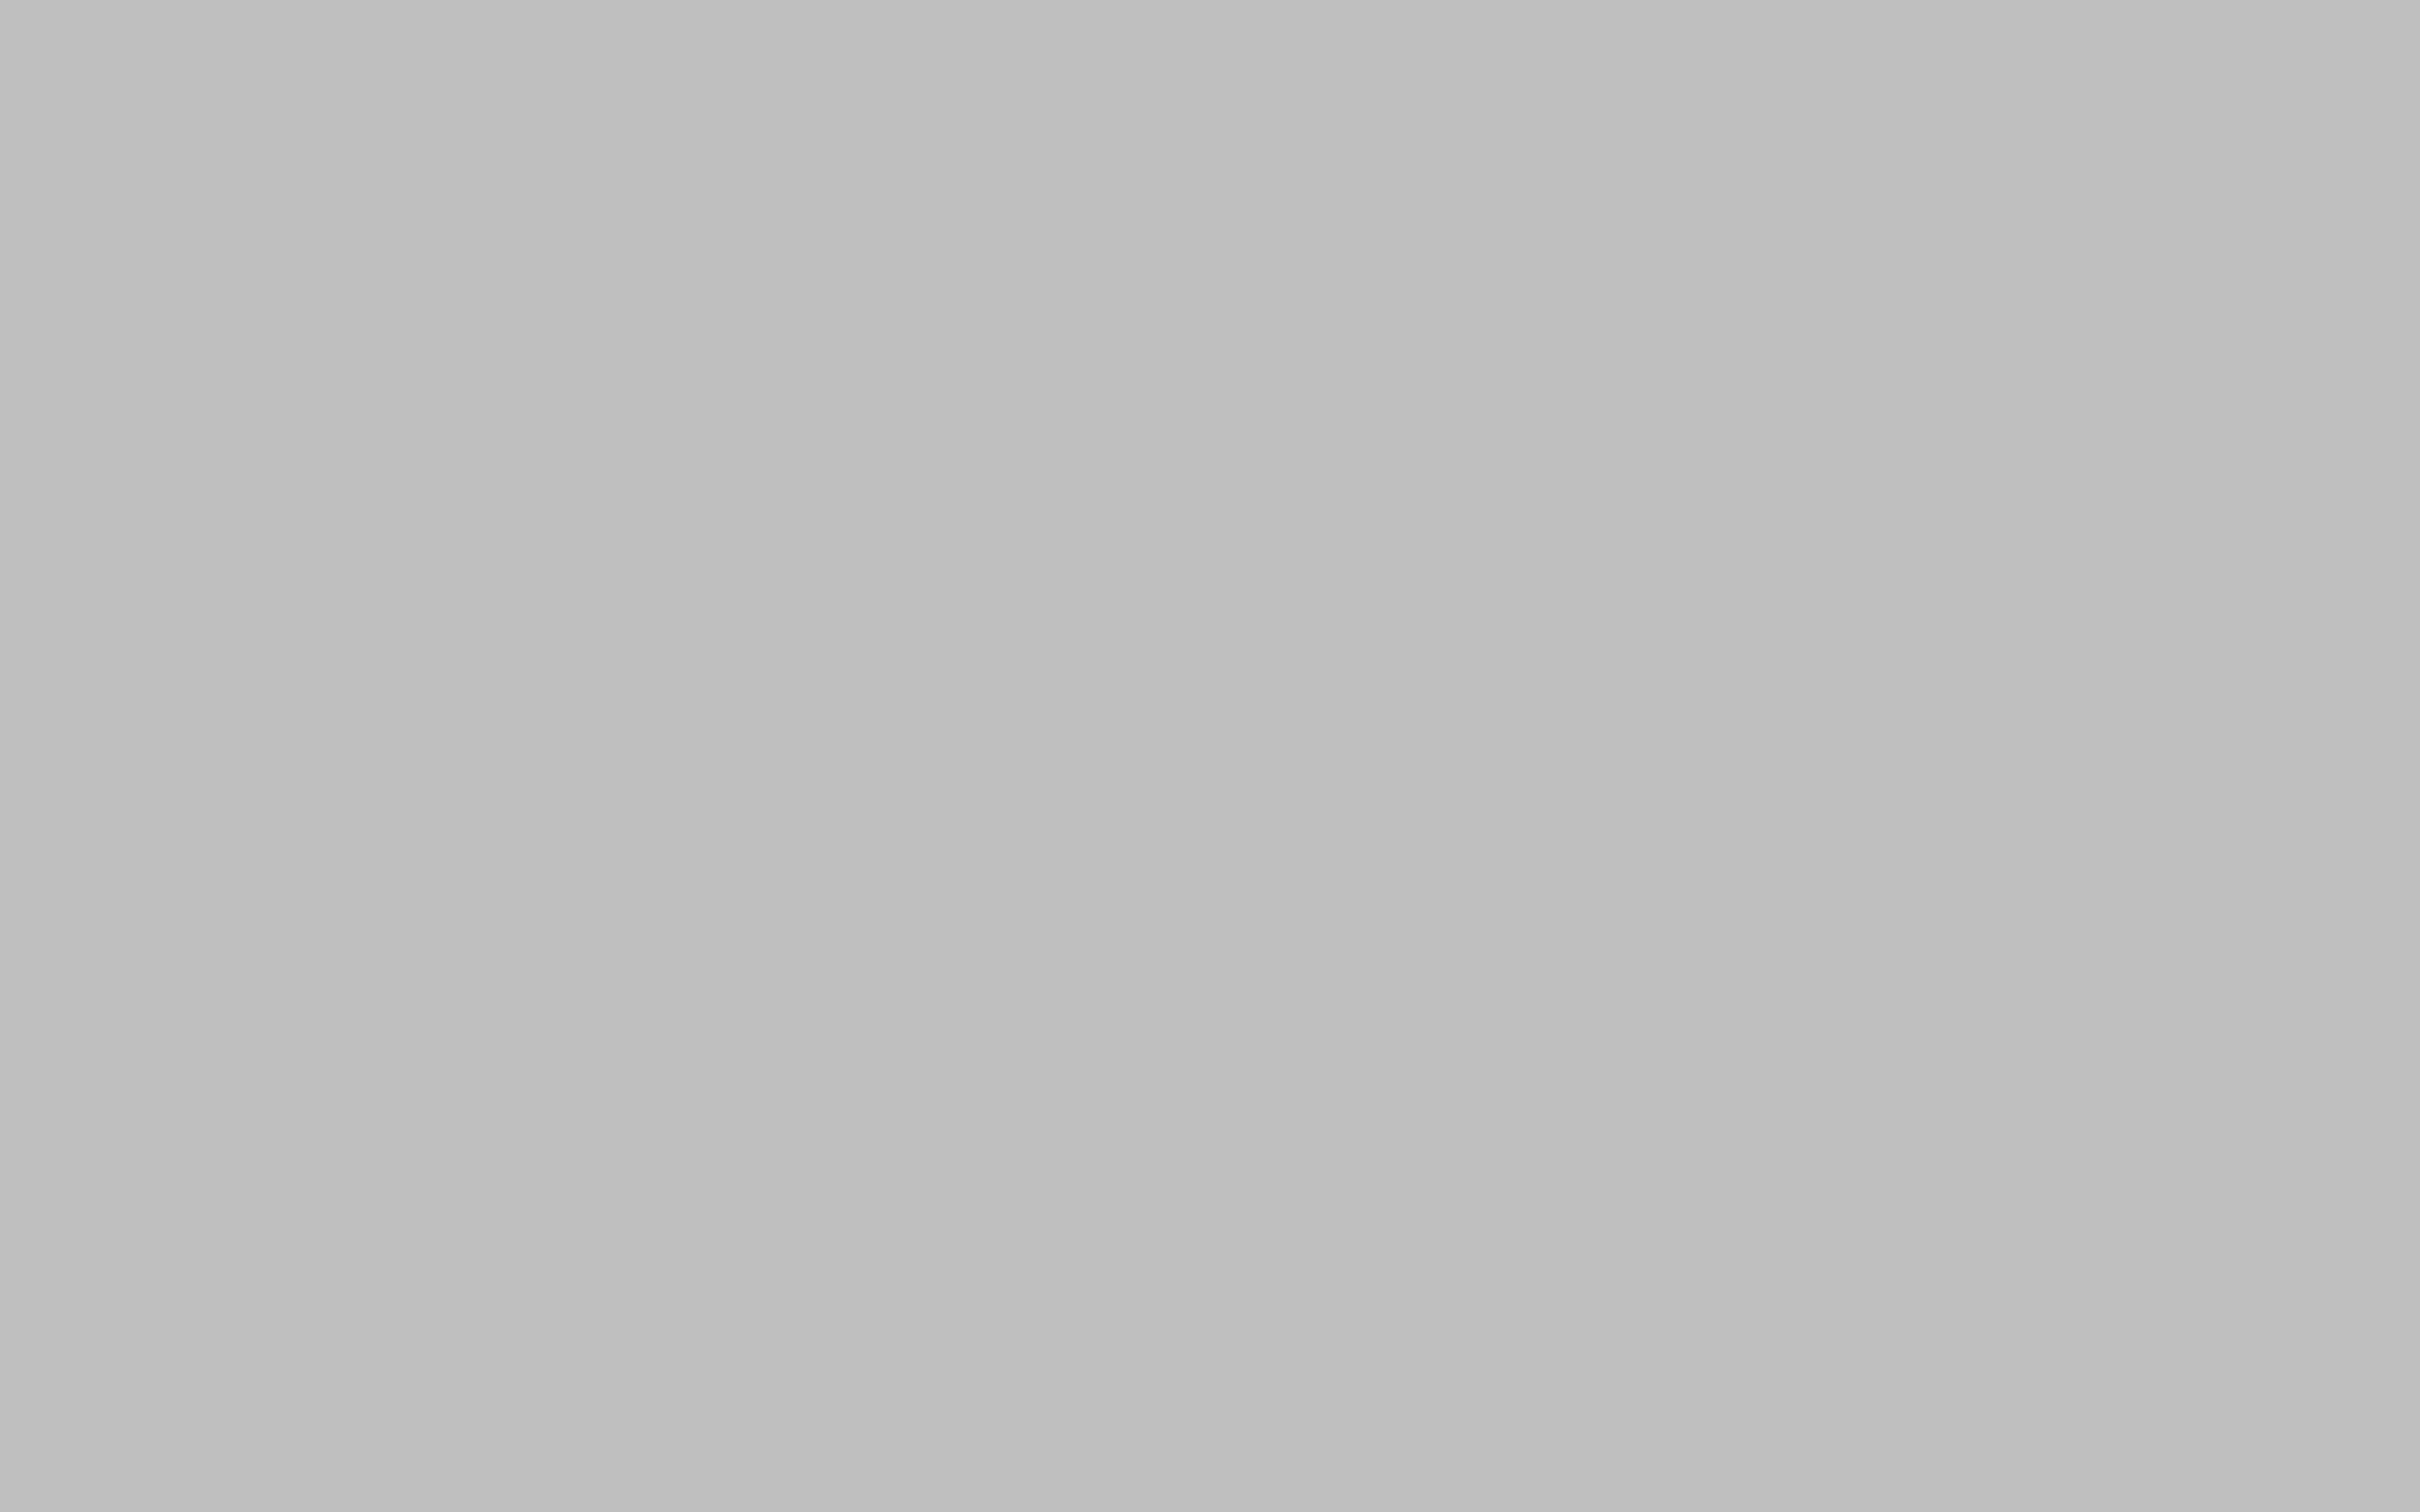 2880x1800 Gray X11 Gui Gray Solid Color Background